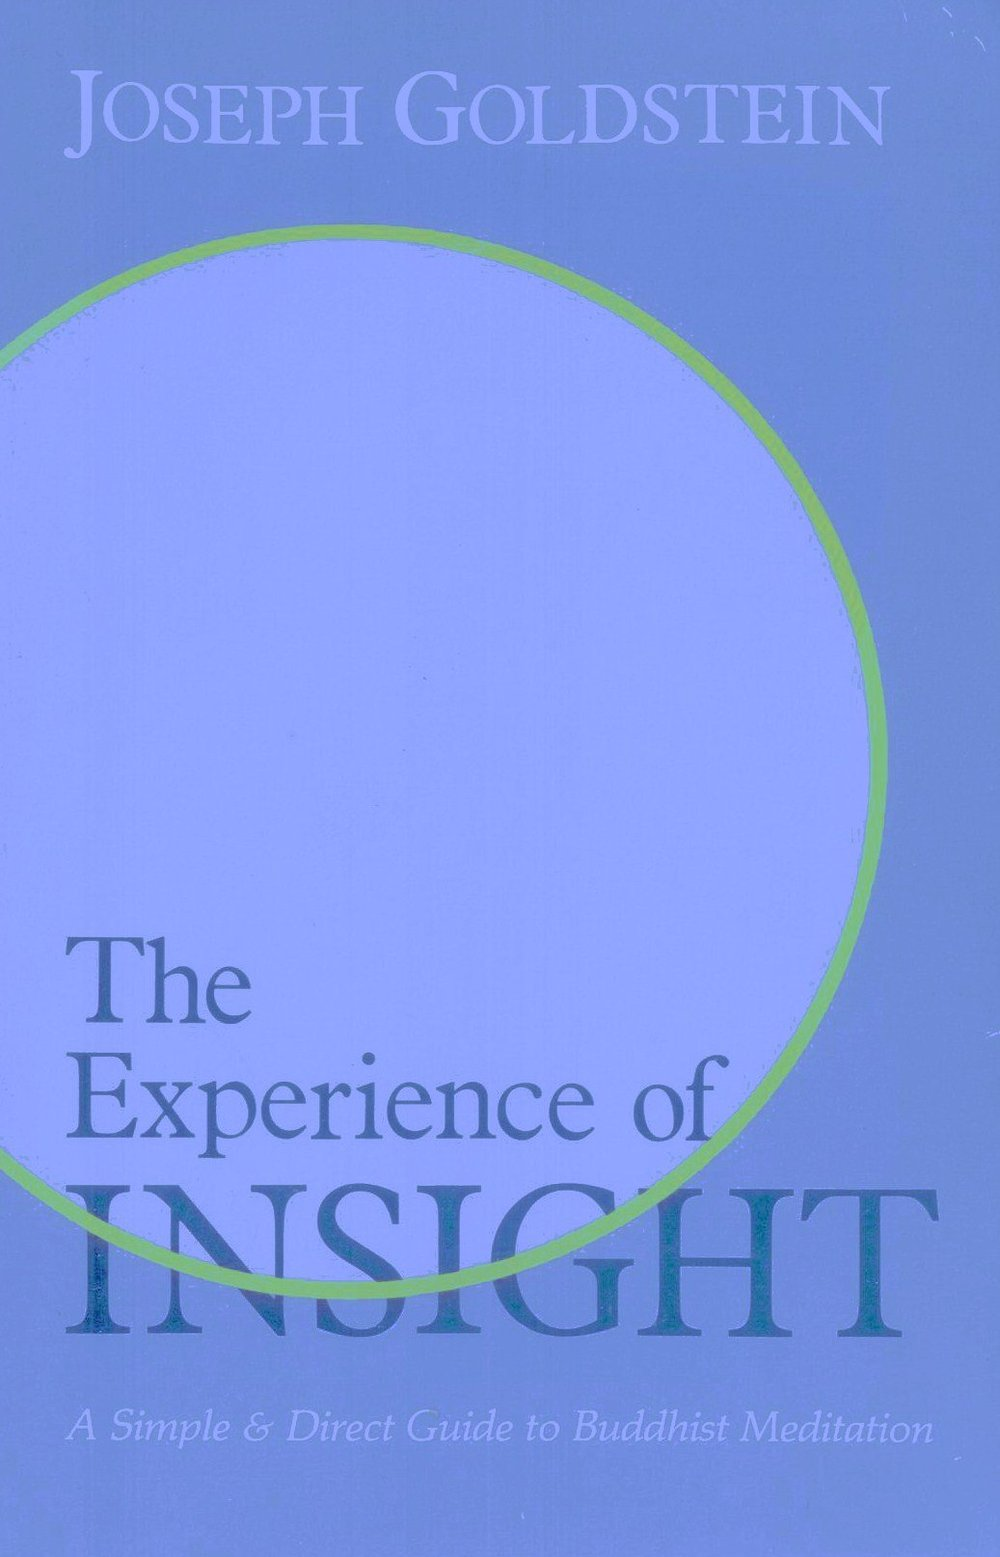 The Experience of Insight- Joseph Goldstein